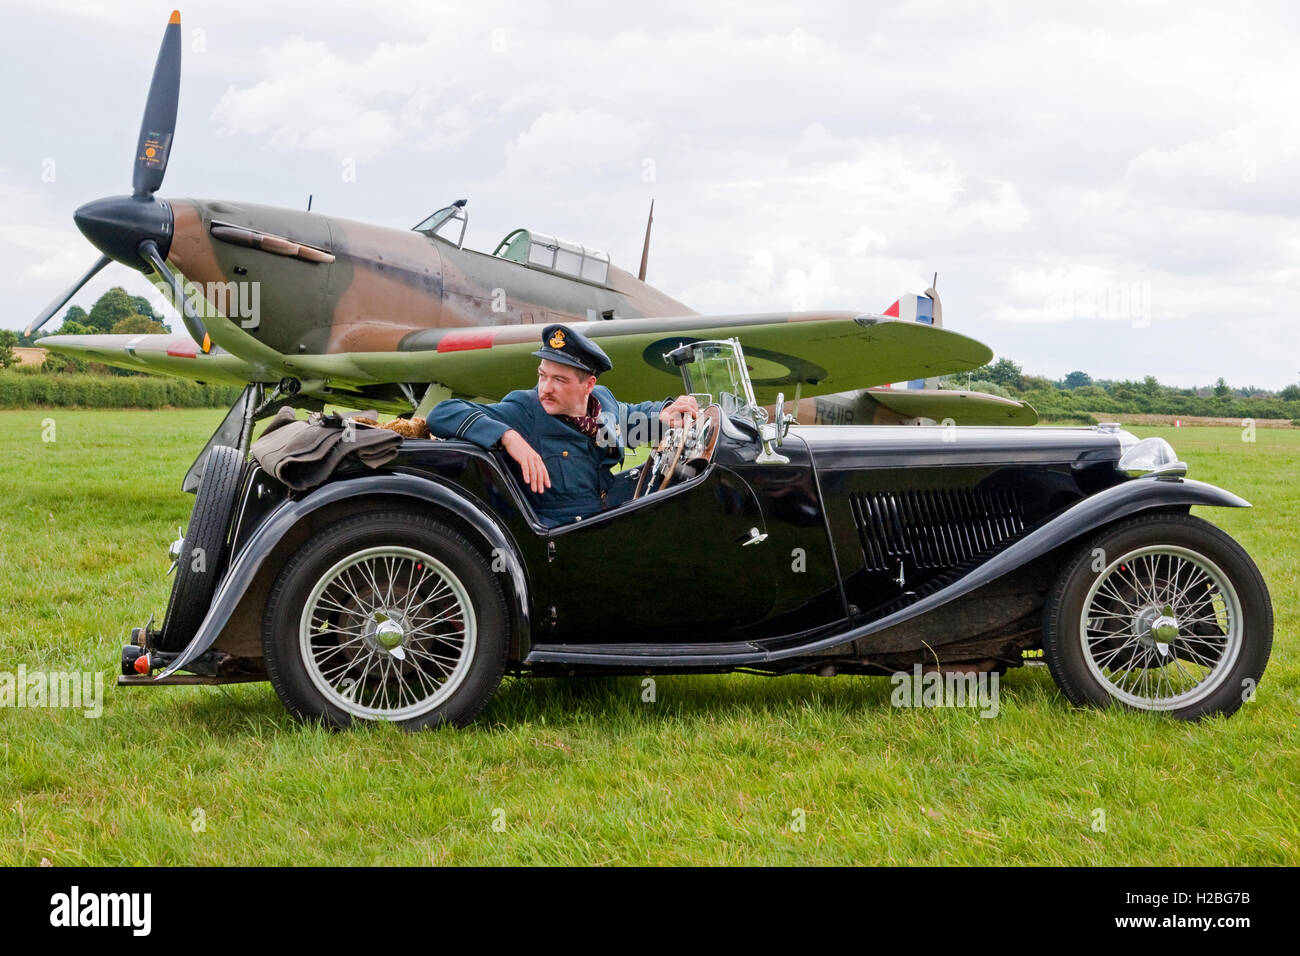 Re-Enactor dressed as a Battle of Britain pilot posed in a period-authentic MG sports car and a Hawker Hurricane - Stock Image